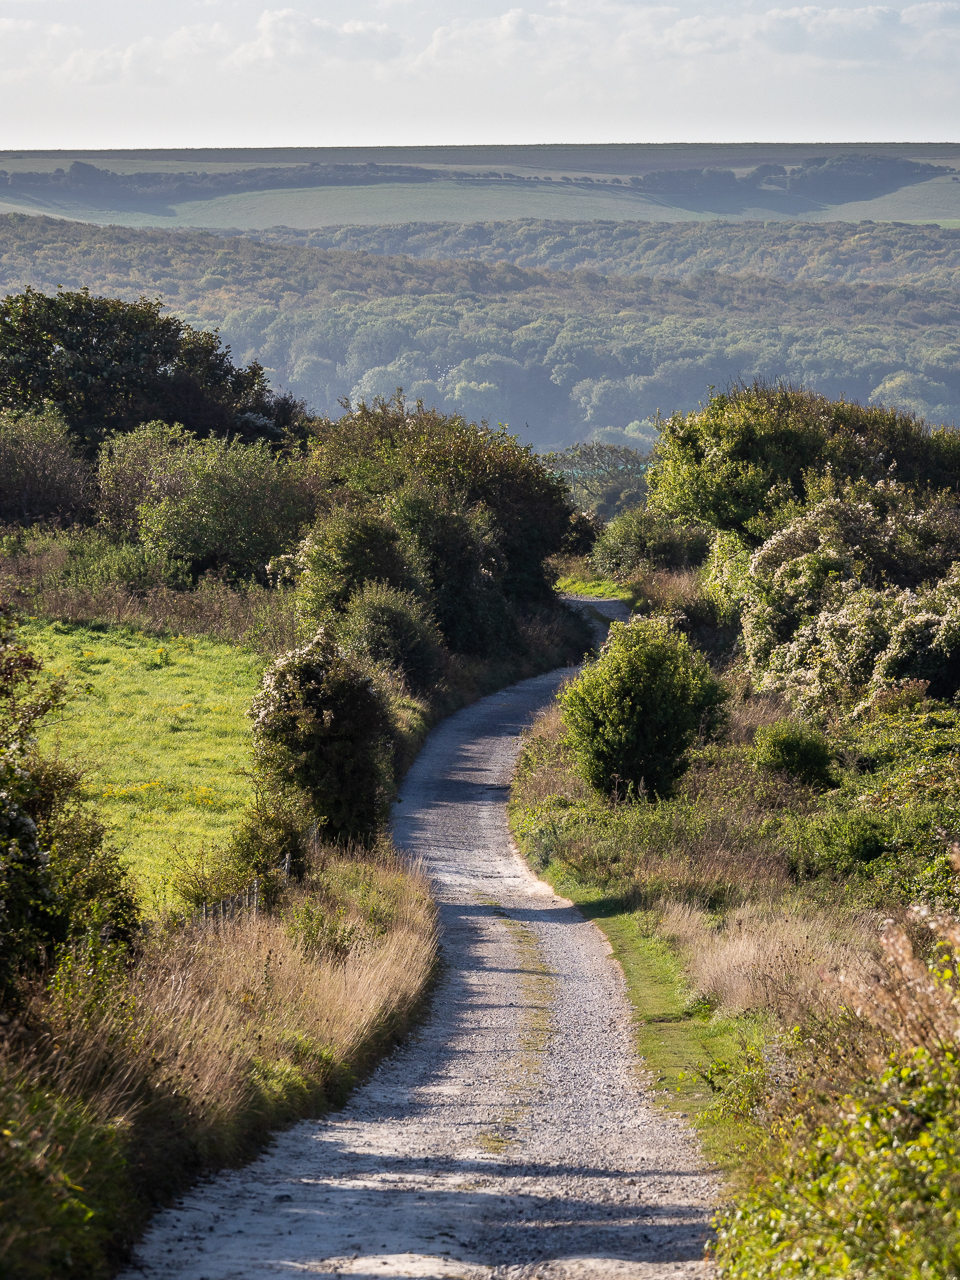 A South Downs Way track near Firle Beacon, a hill in East Sussex, England.